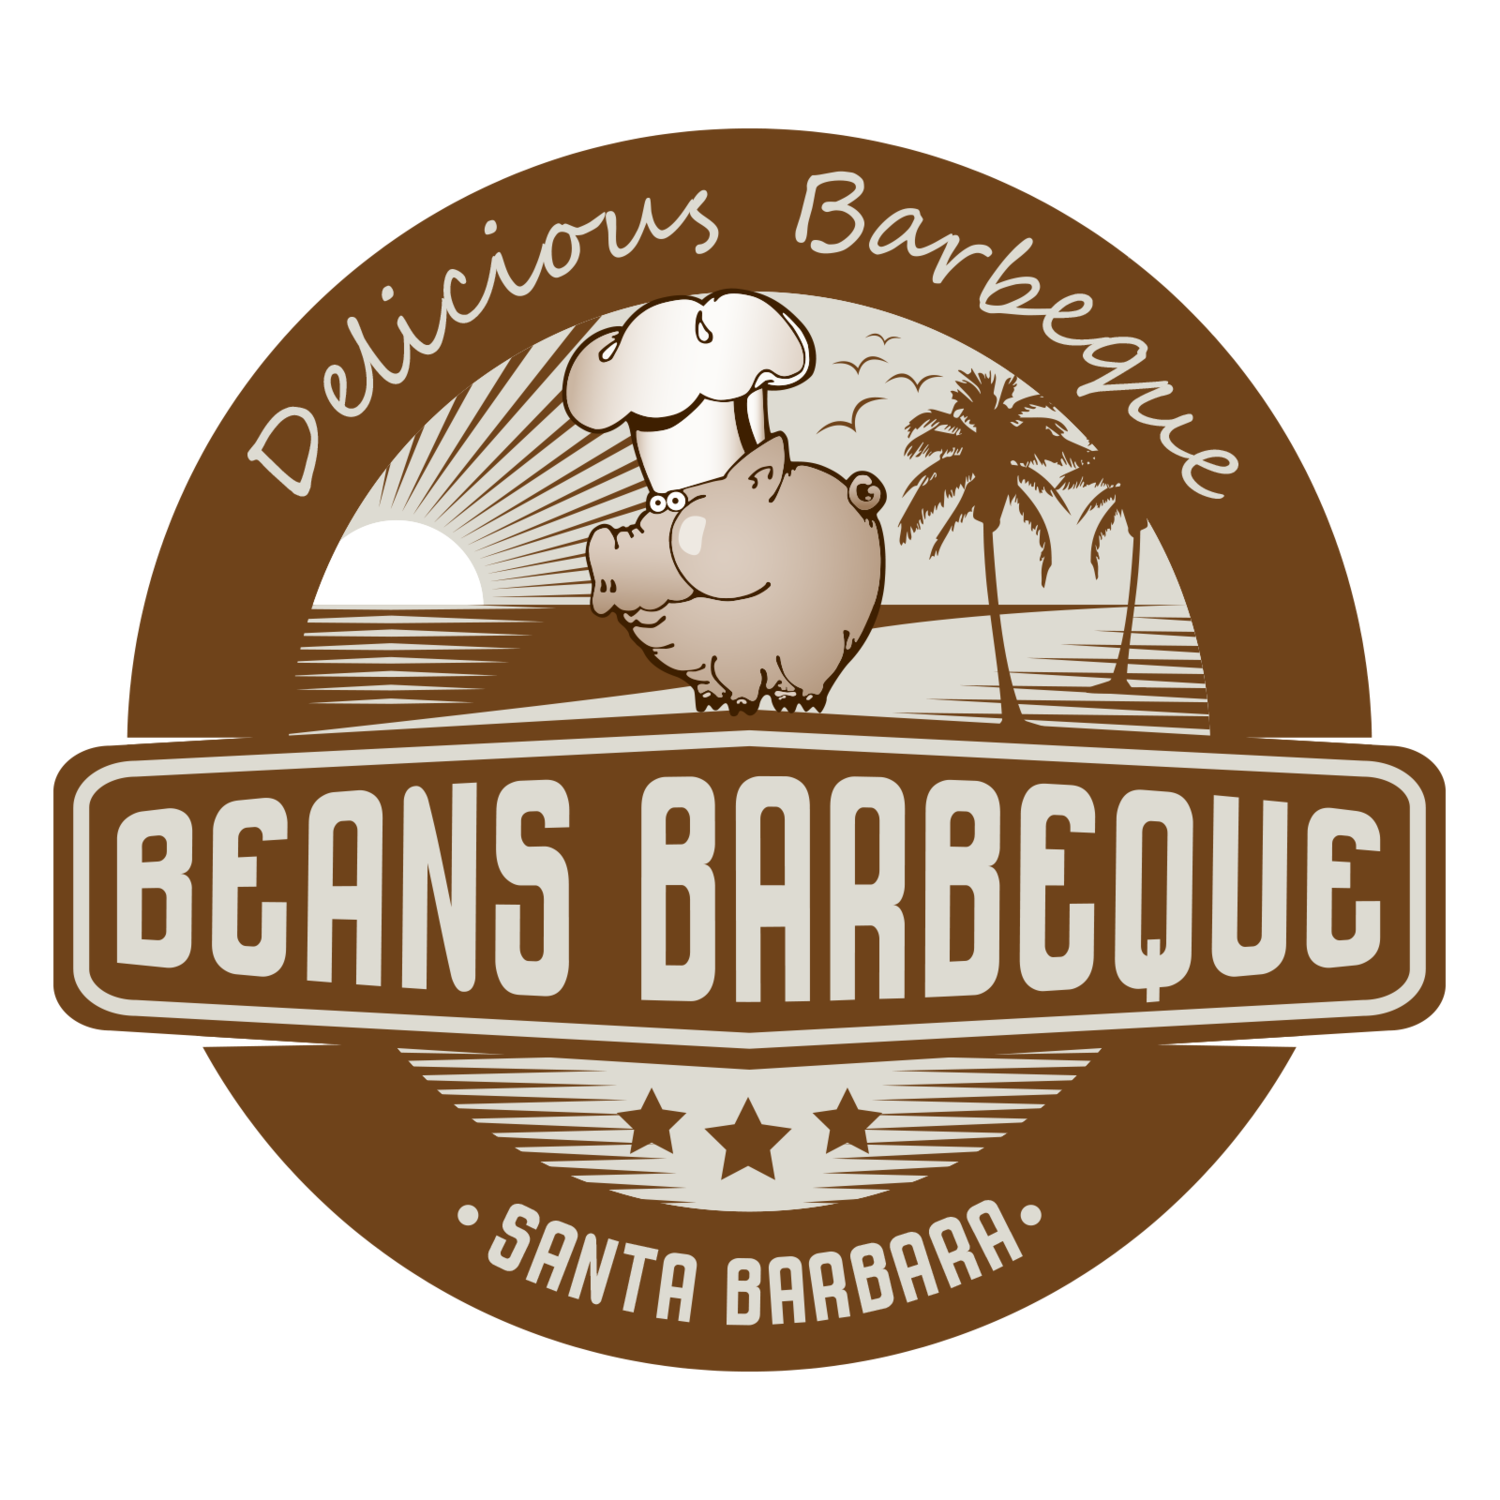 Beans BBQ and Catering